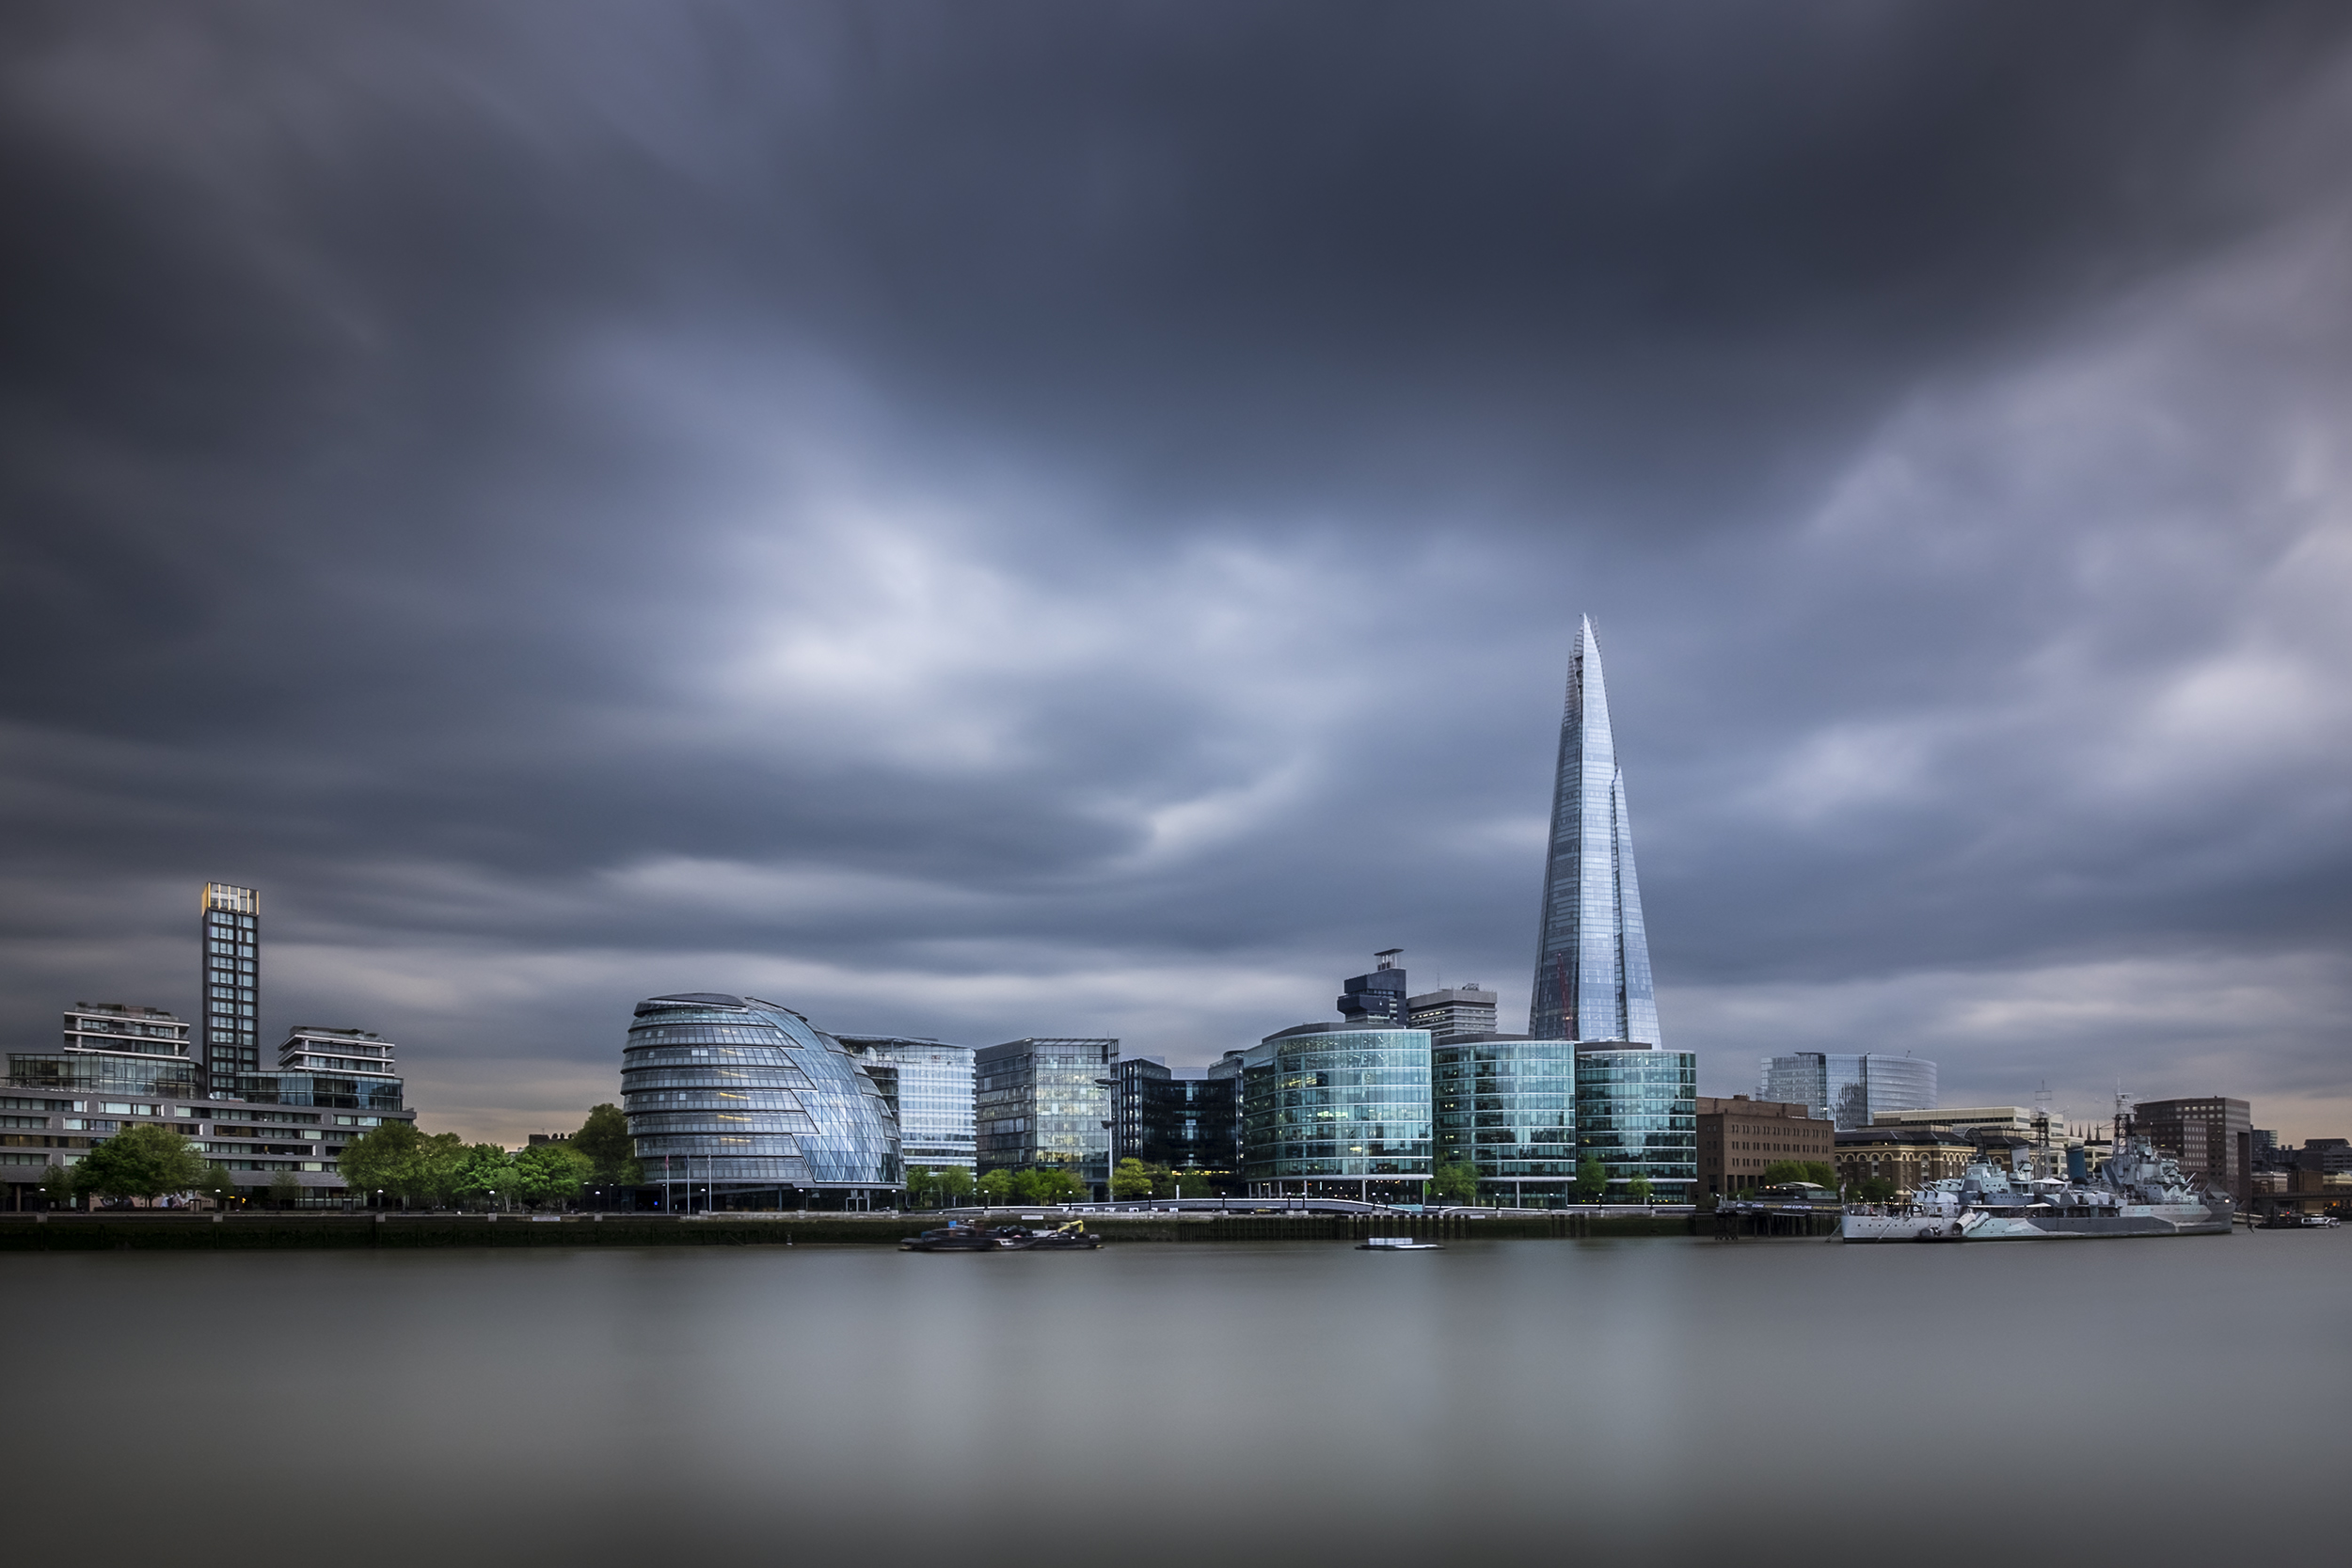 A photo of the Shard in London by Trevor Sherwin